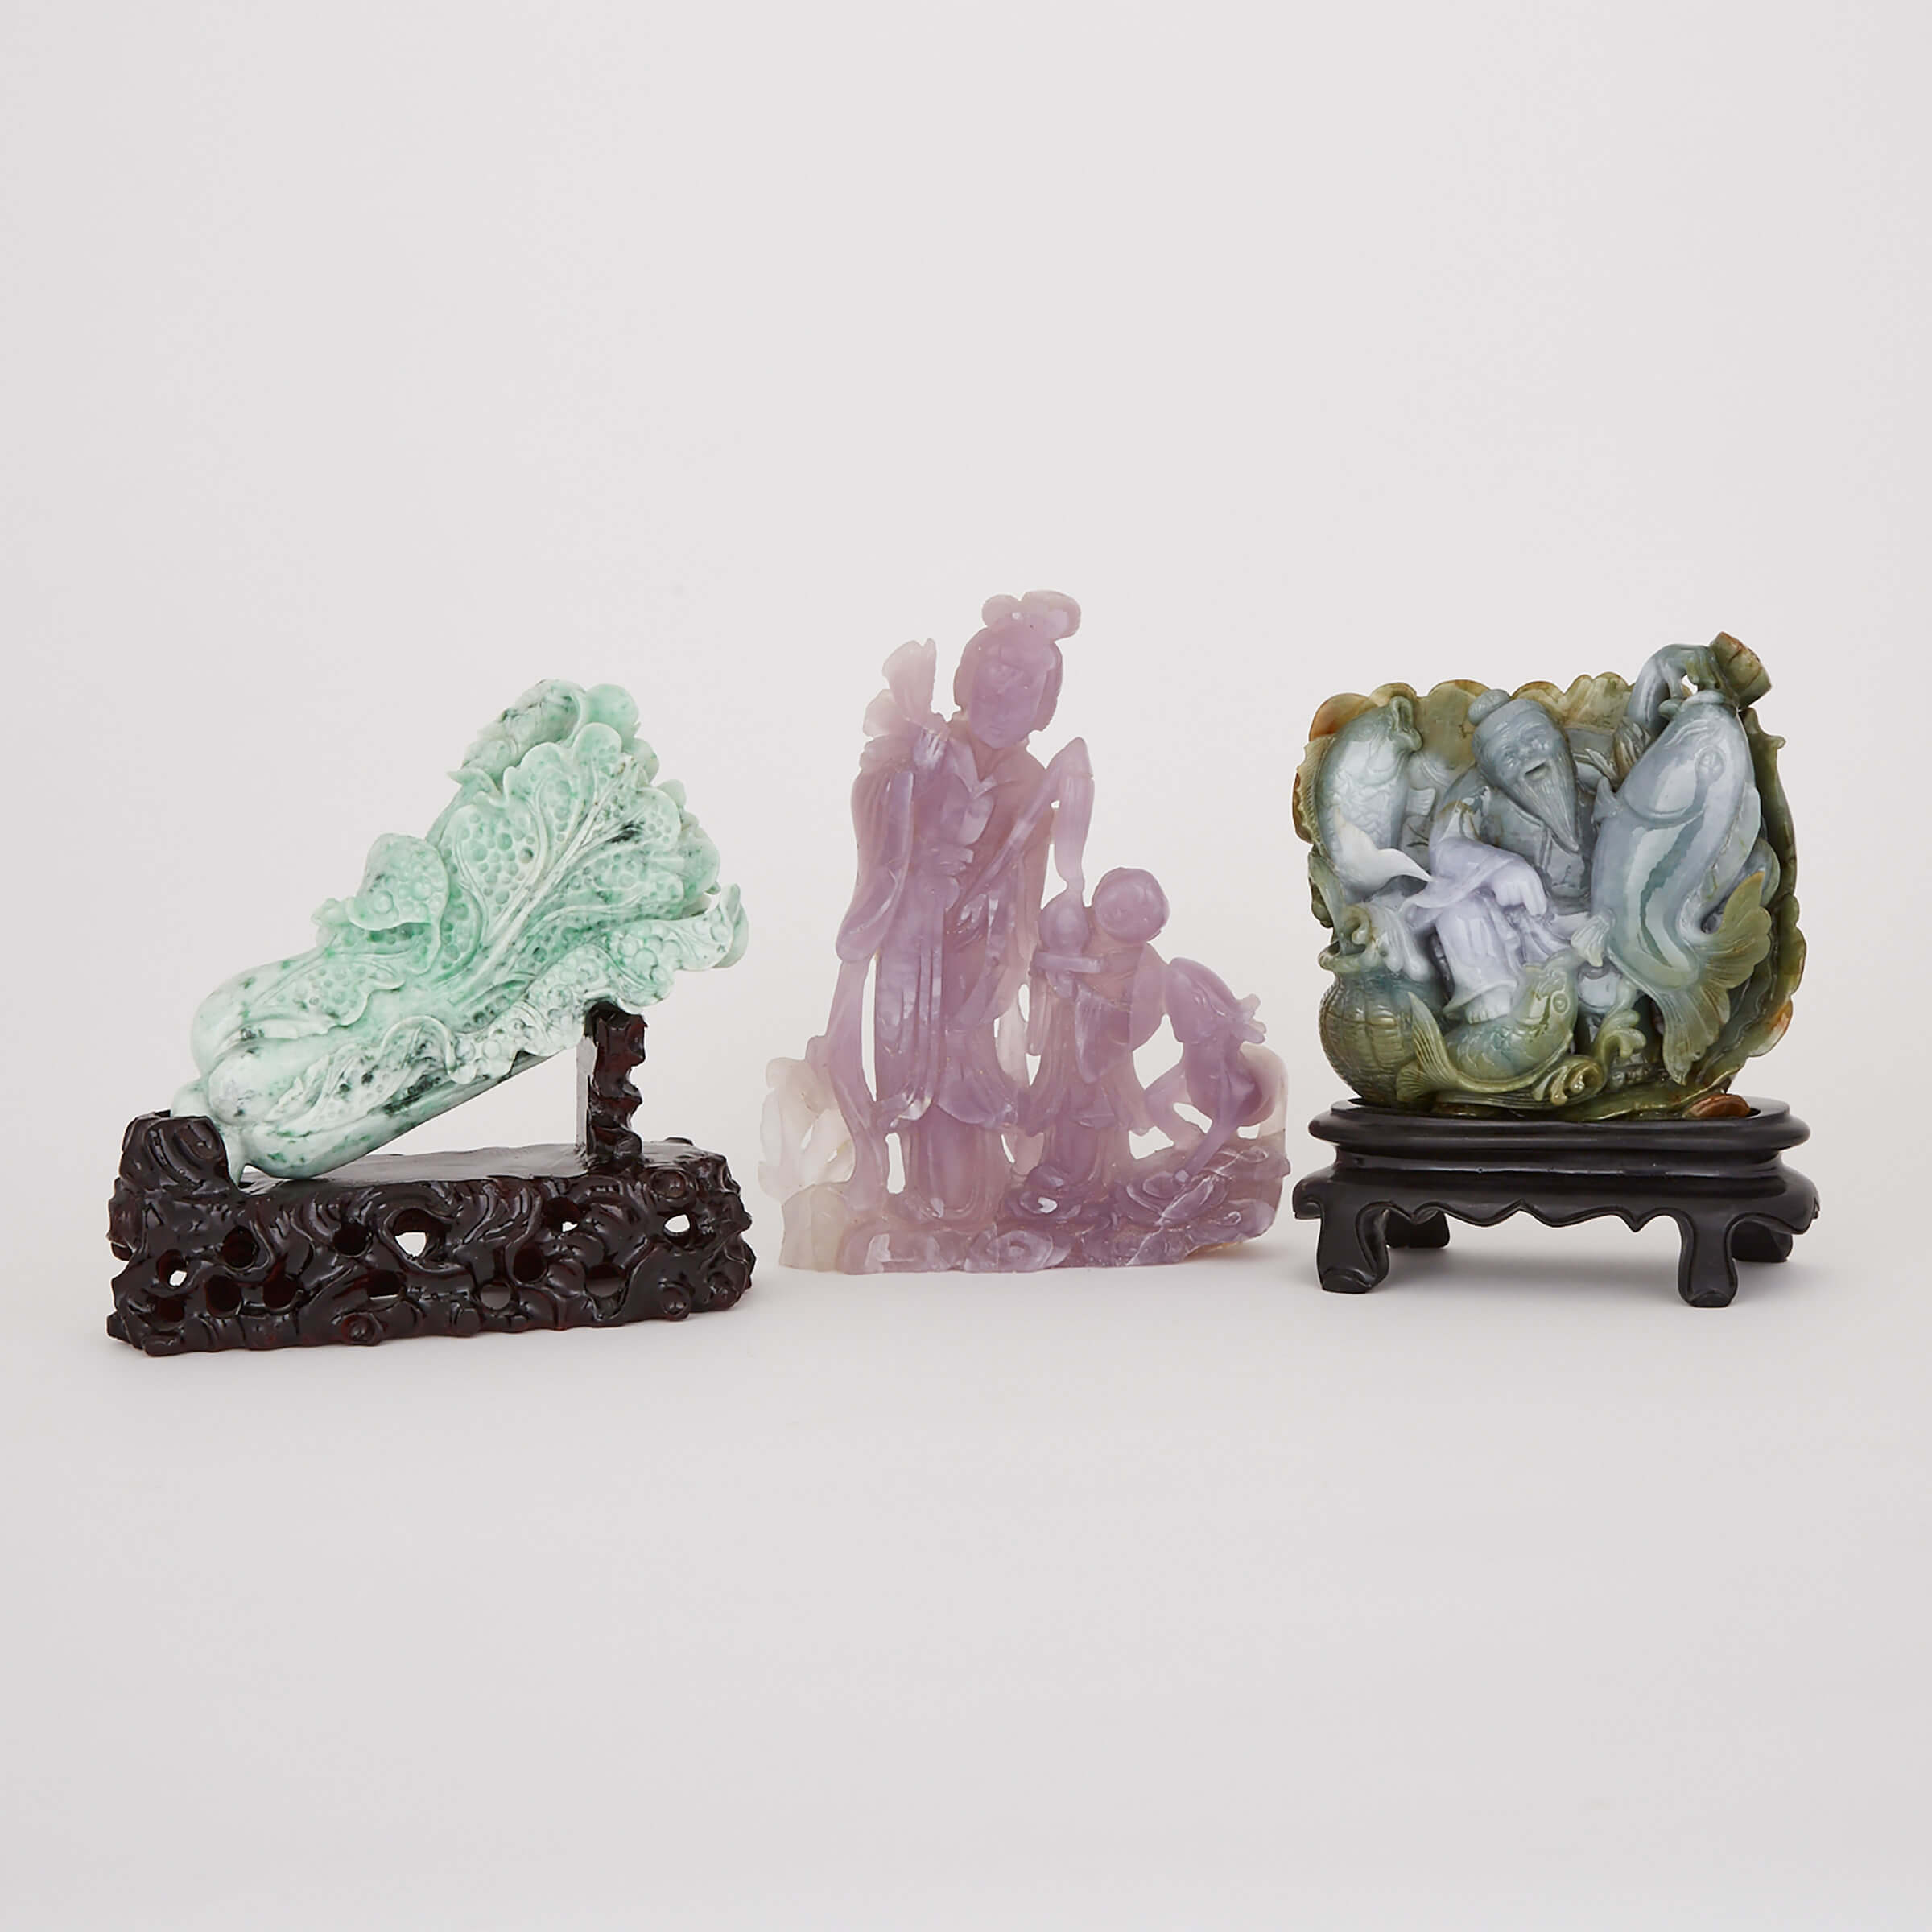 A Group of Three Hardstone Carvings